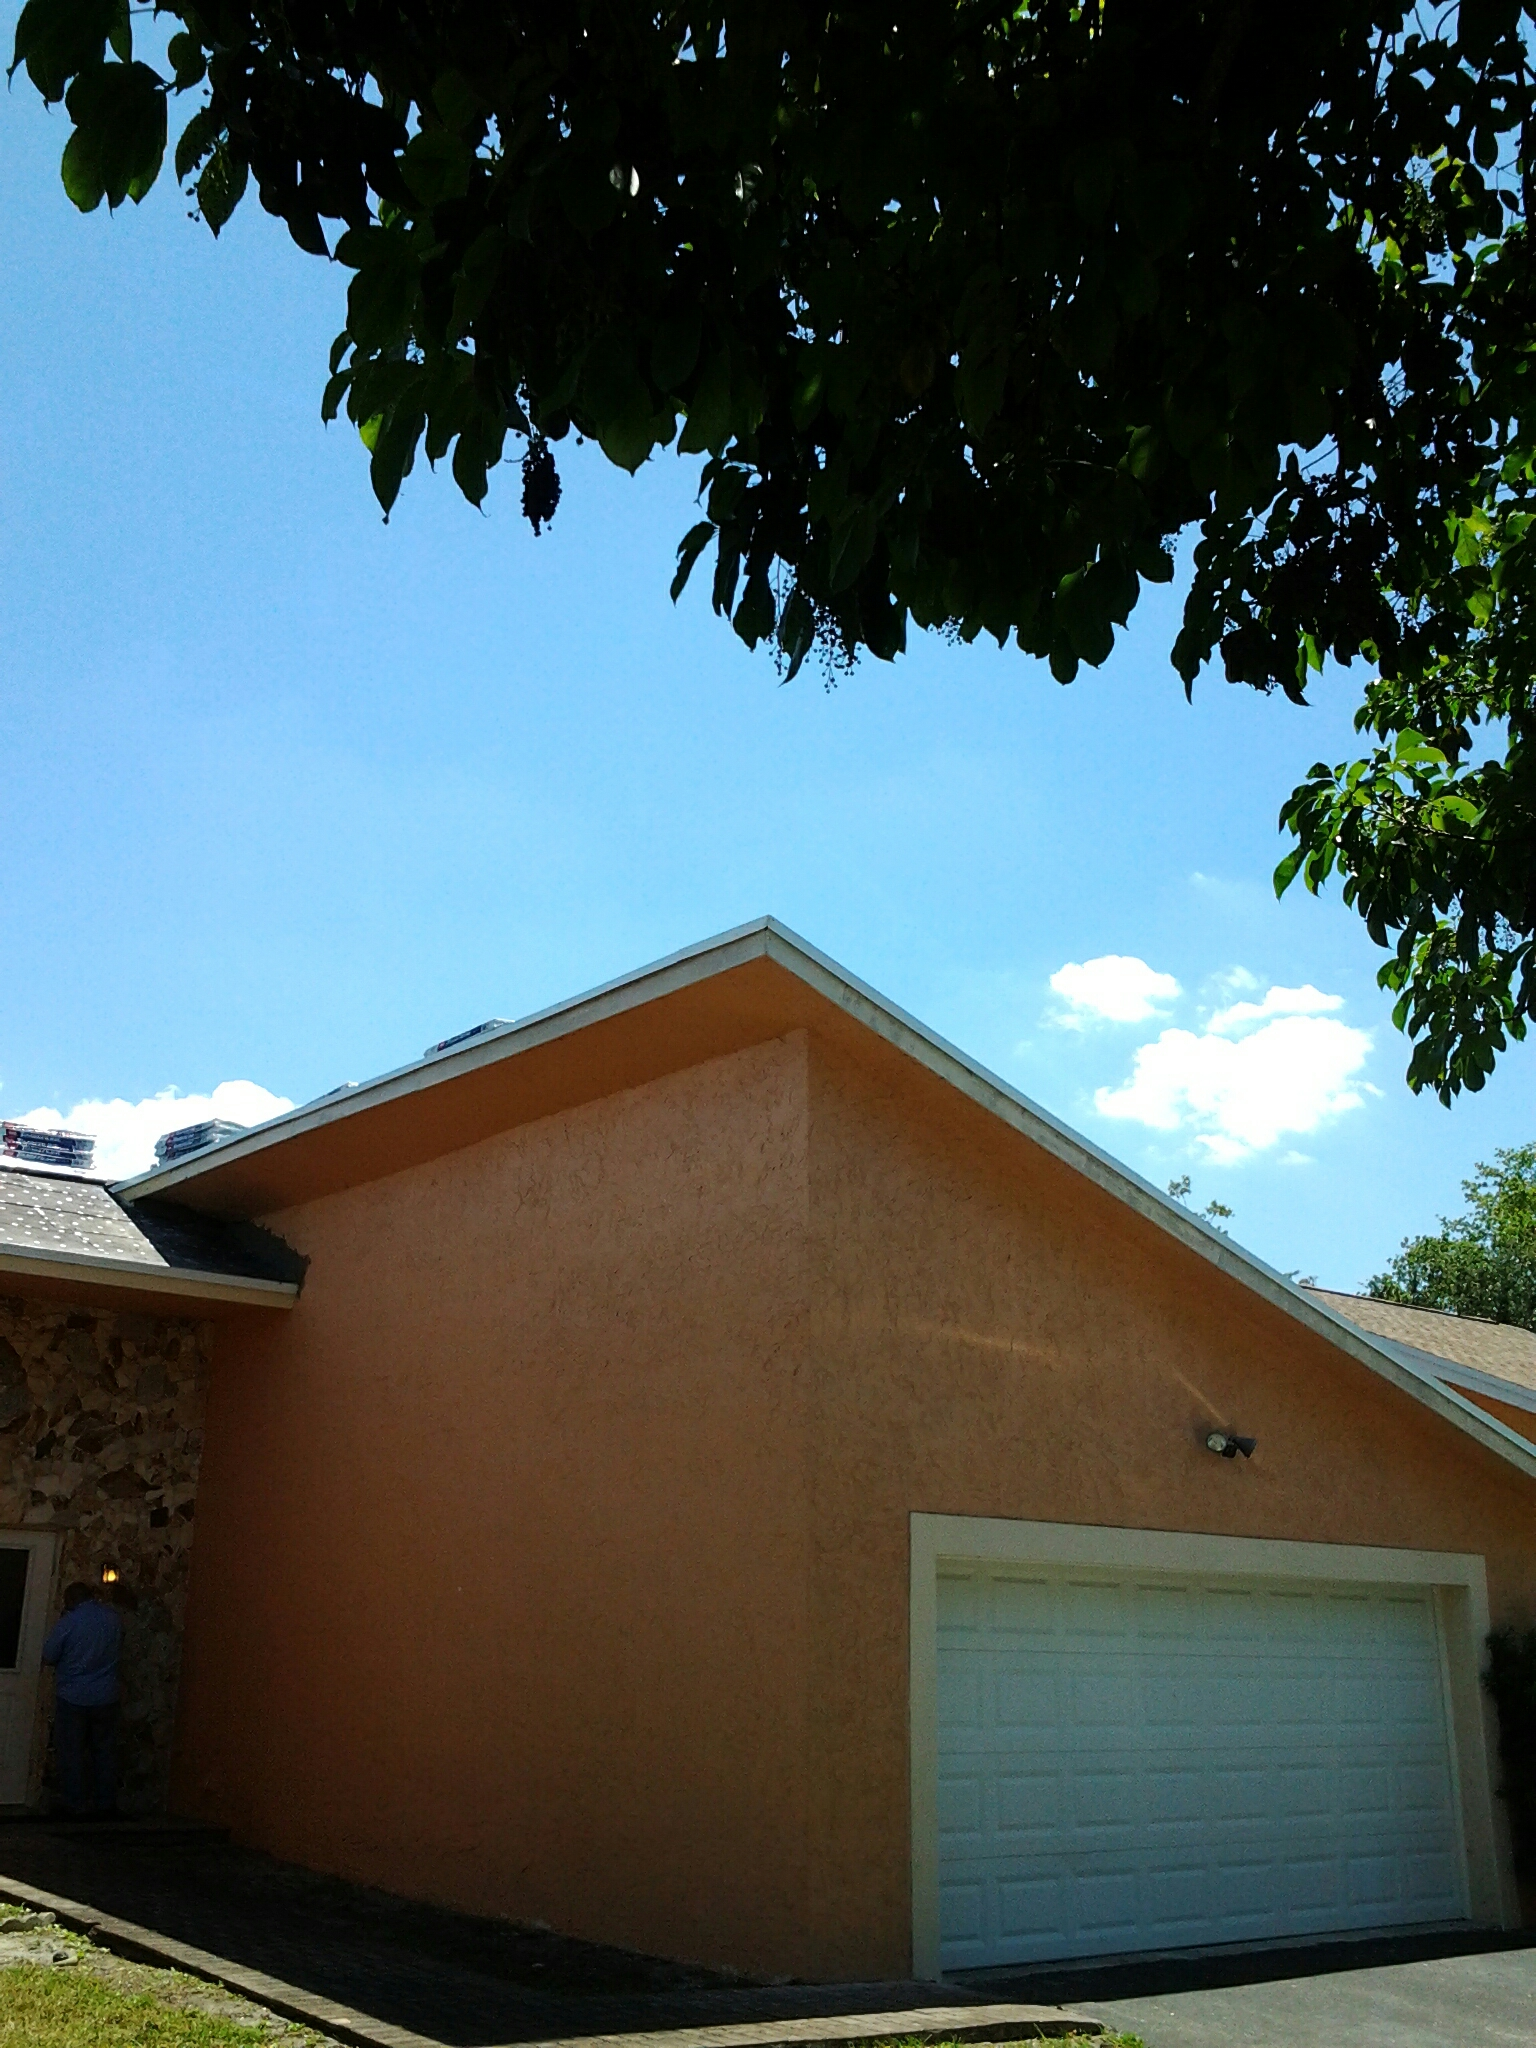 Tamarac, FL - Stucco work on roof